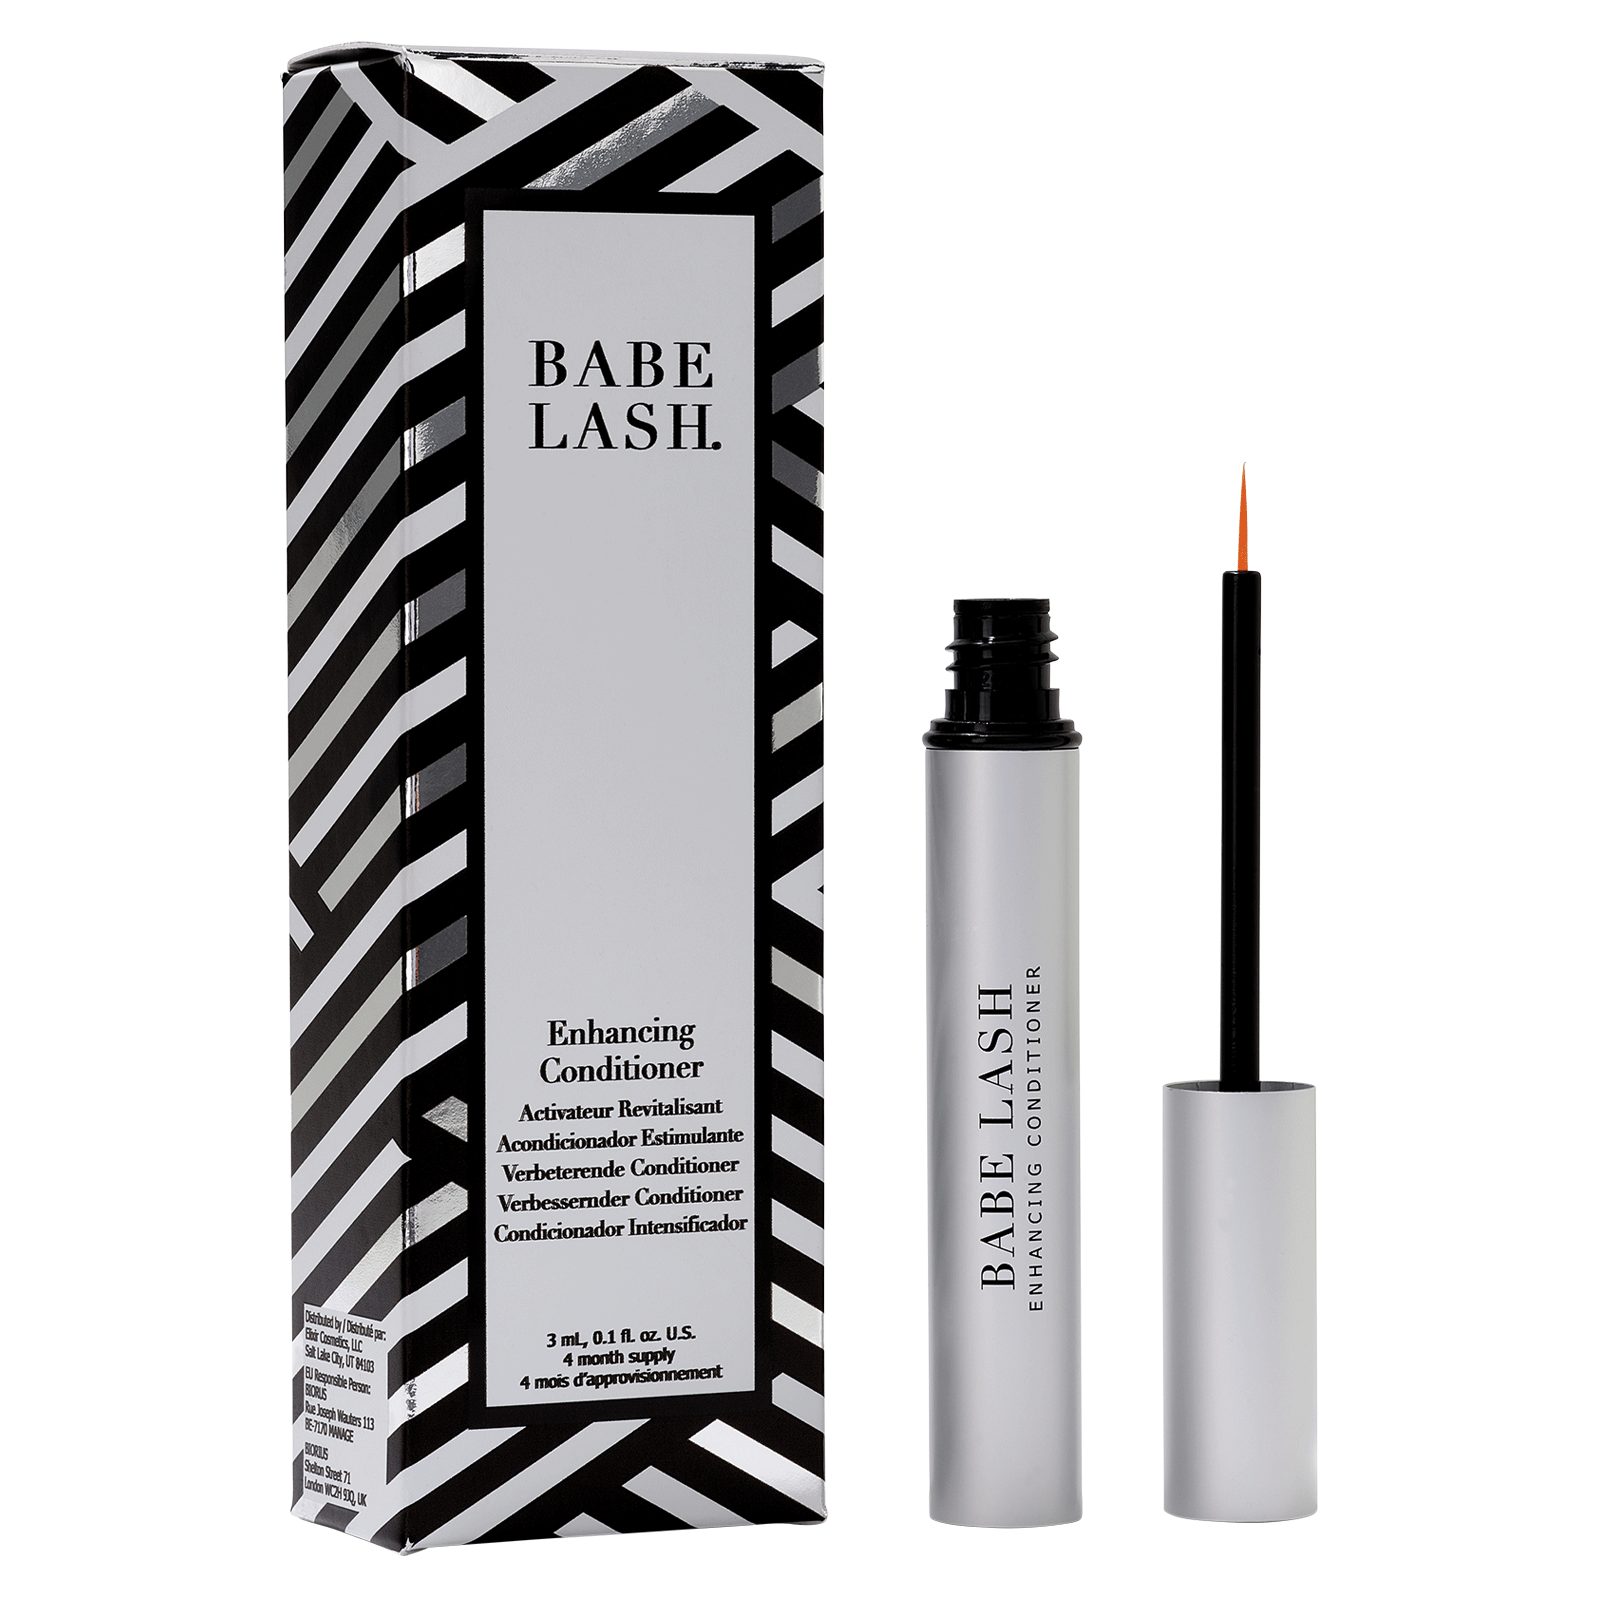 Babe Lash Enhancing Conditioner